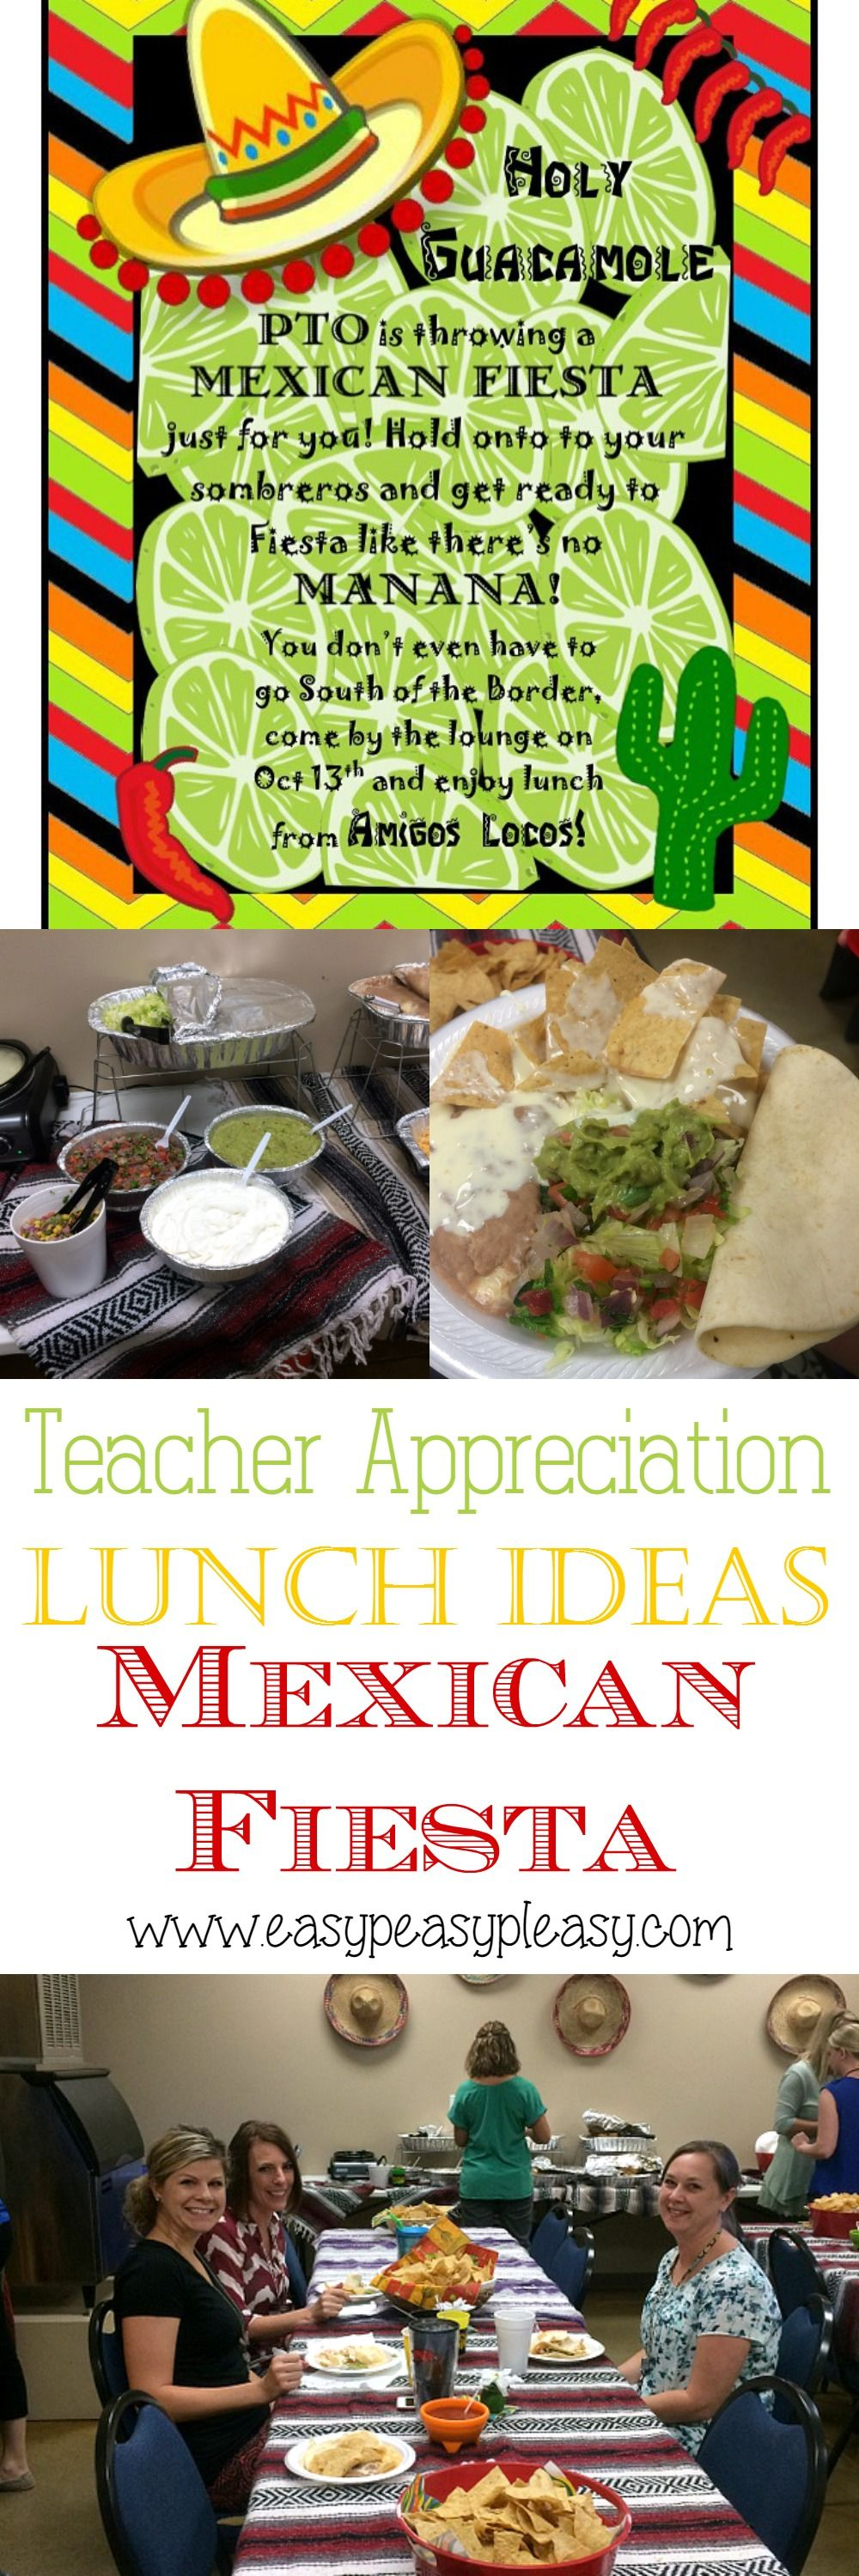 teacher appreciation lunch ideas mexican fiesta | ideas for teacher